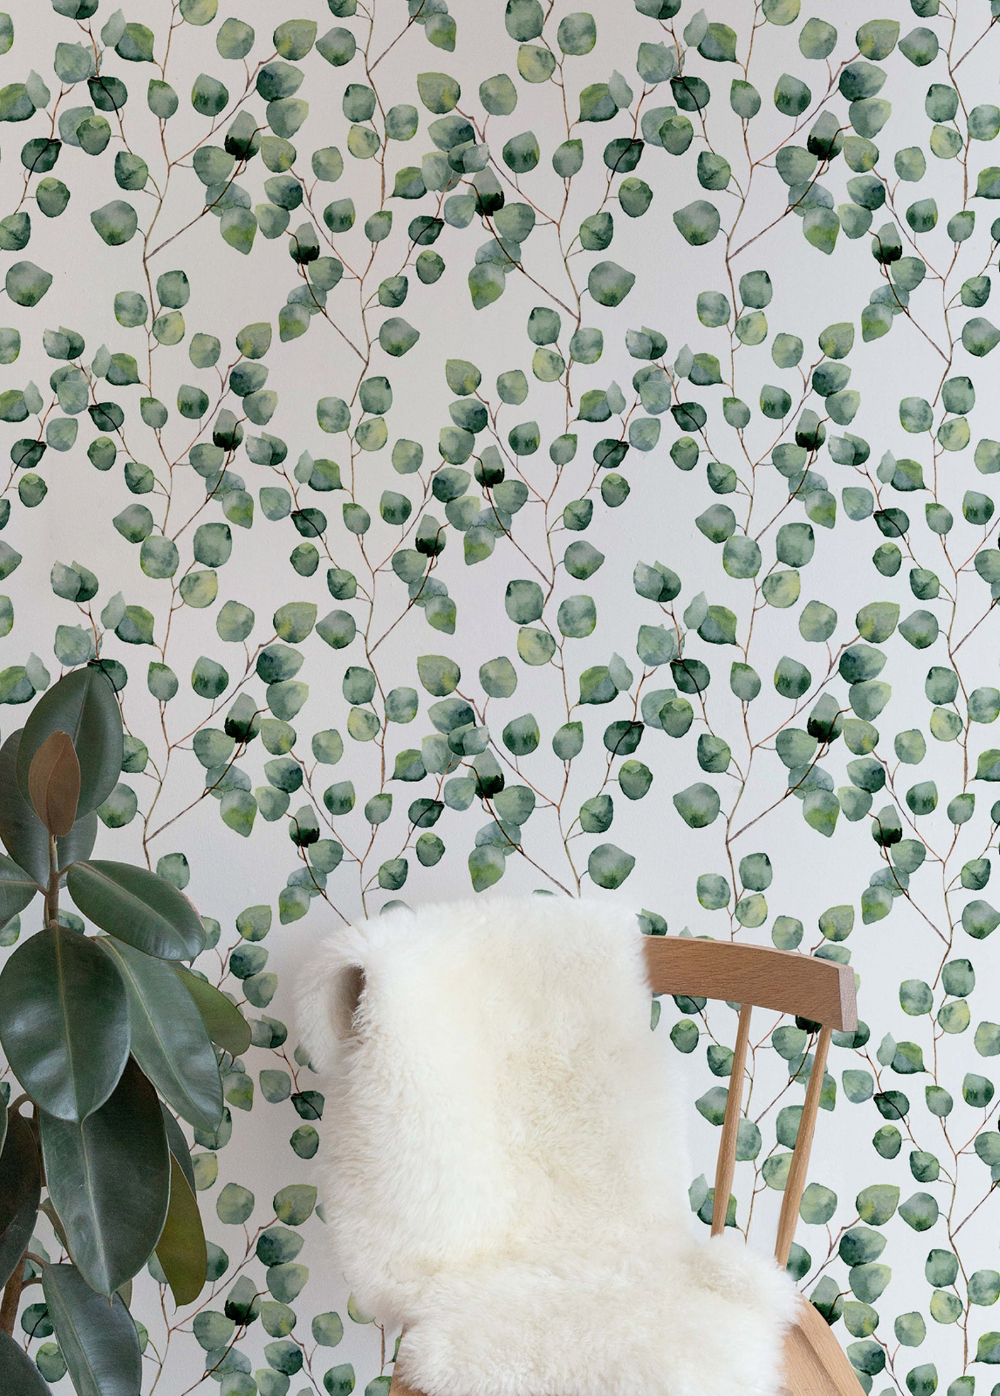 Removable Wallpaper Cactus Wallpaper Eucalyptus Peel And Stick Etsy Temporary Wallpaper Best Removable Wallpaper Removable Wallpaper